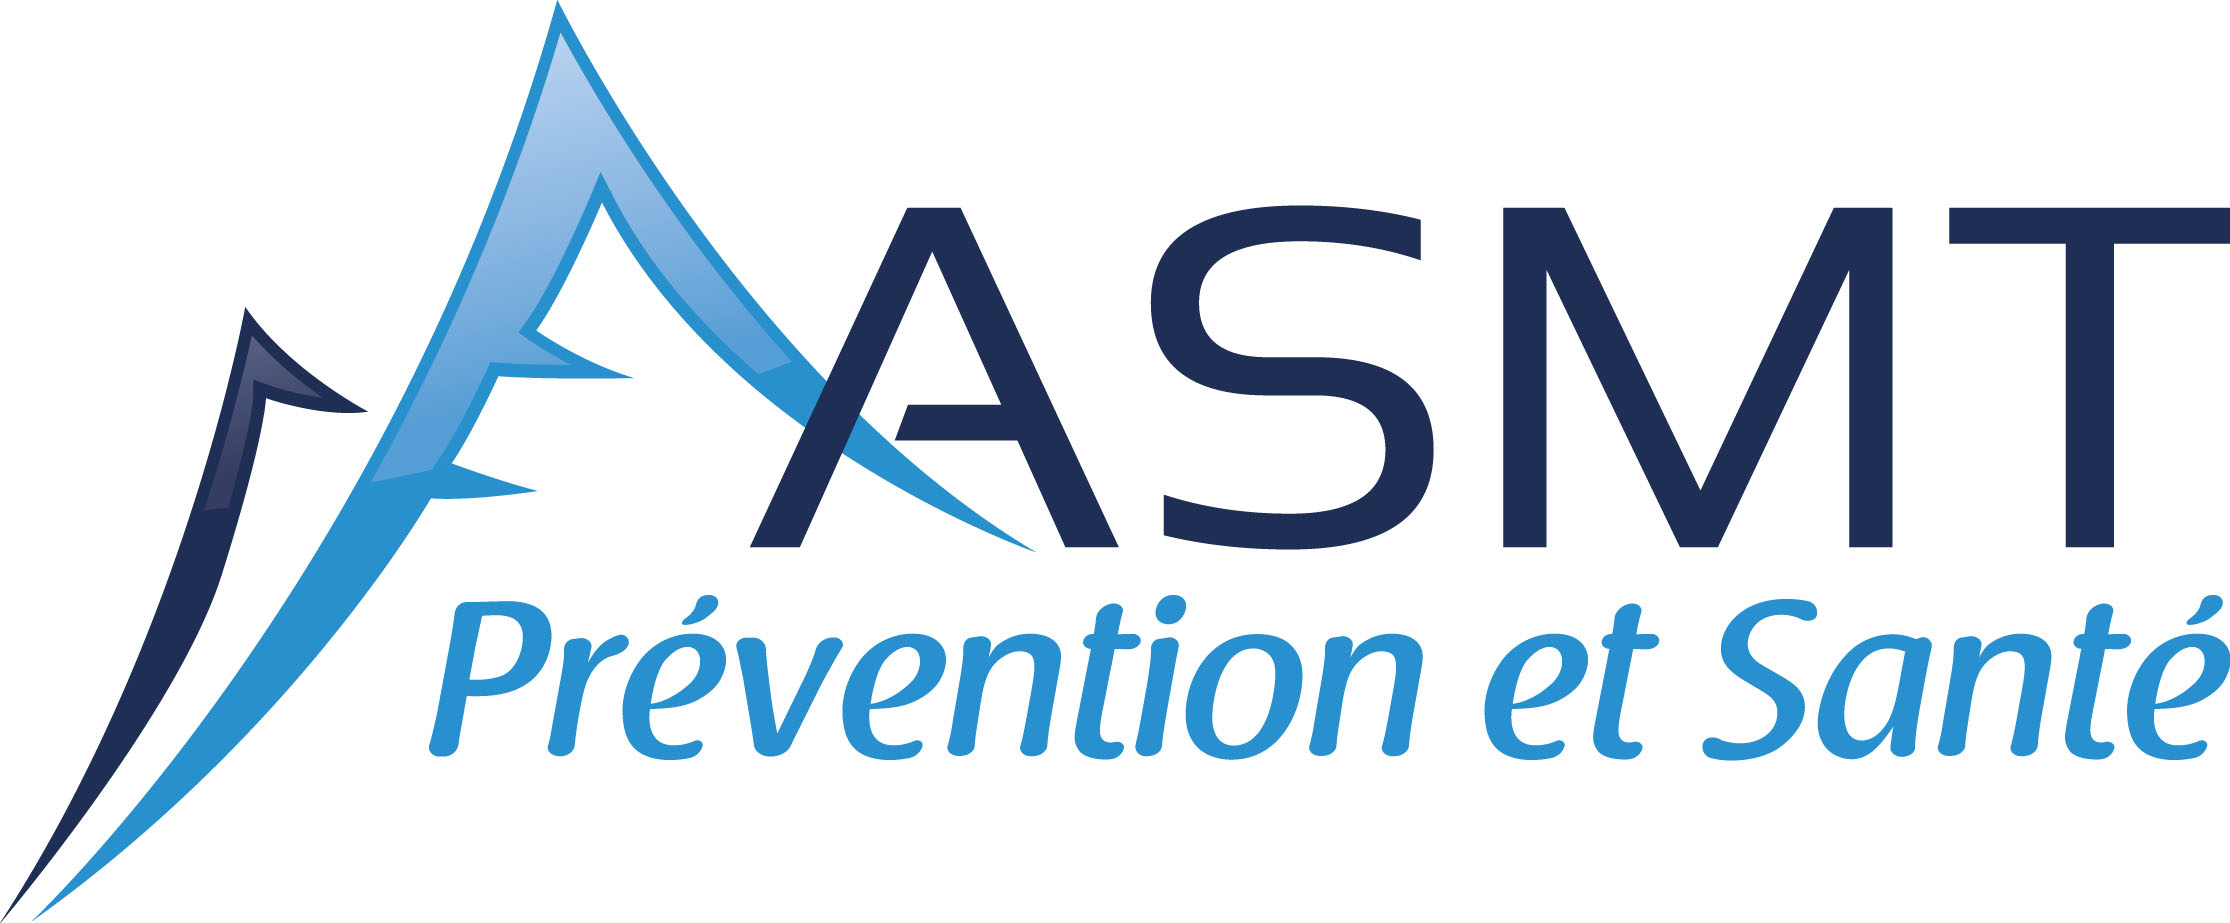 logo-prevention-sante01